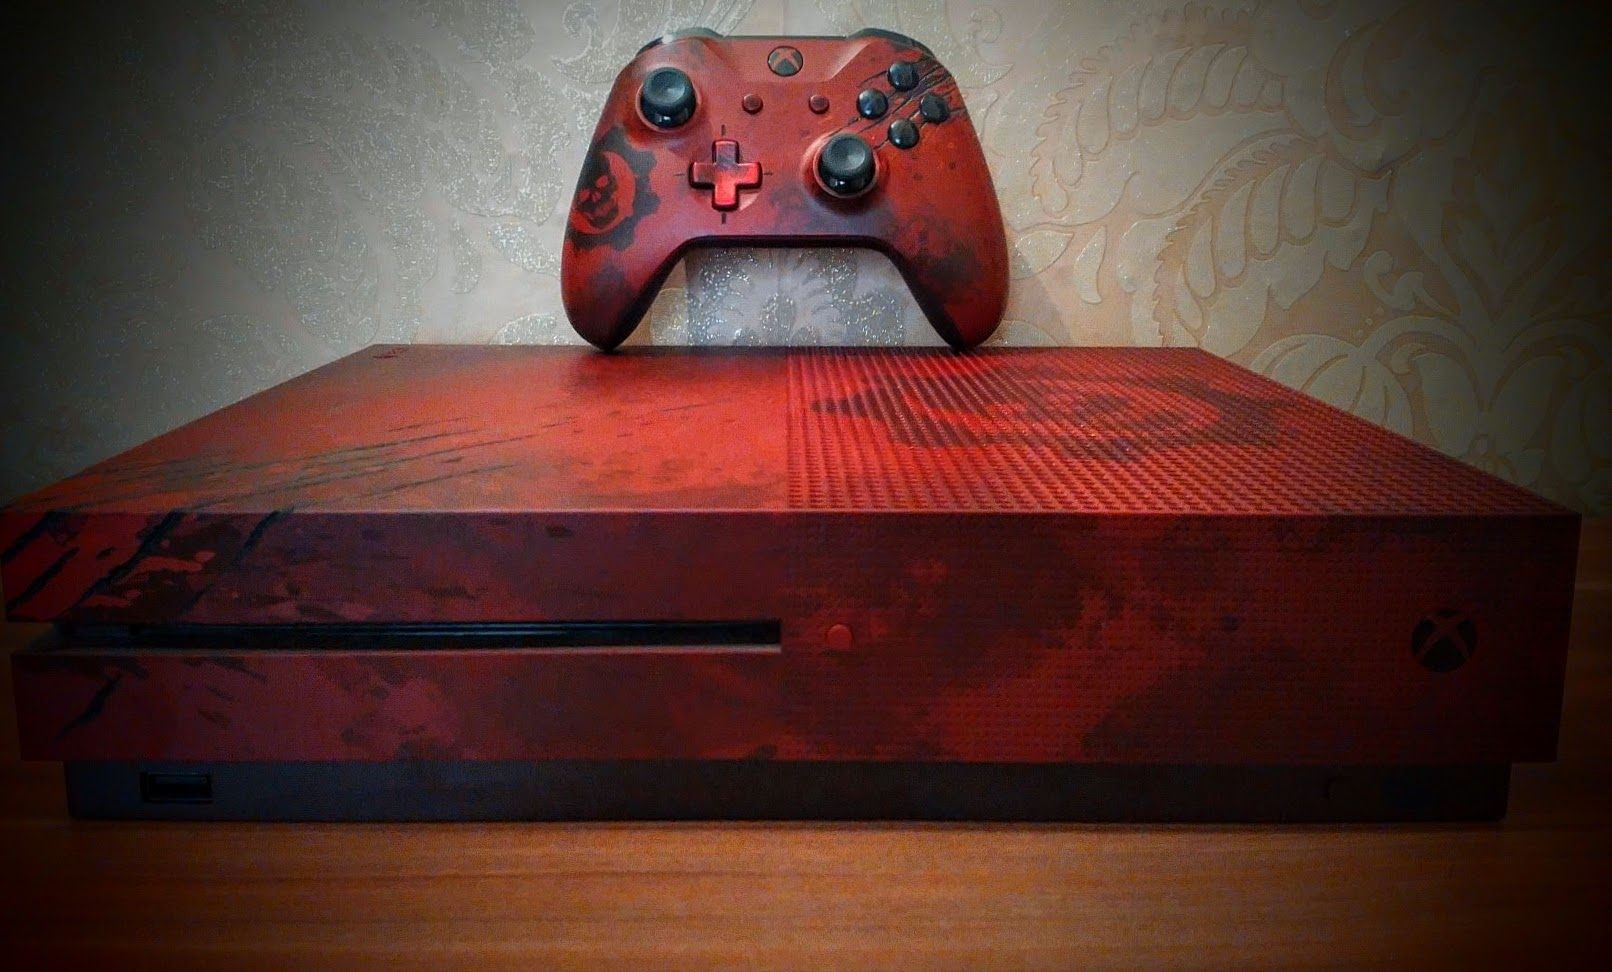 Xbox One S - Gears of War 4 Limited Edition 2TB Console